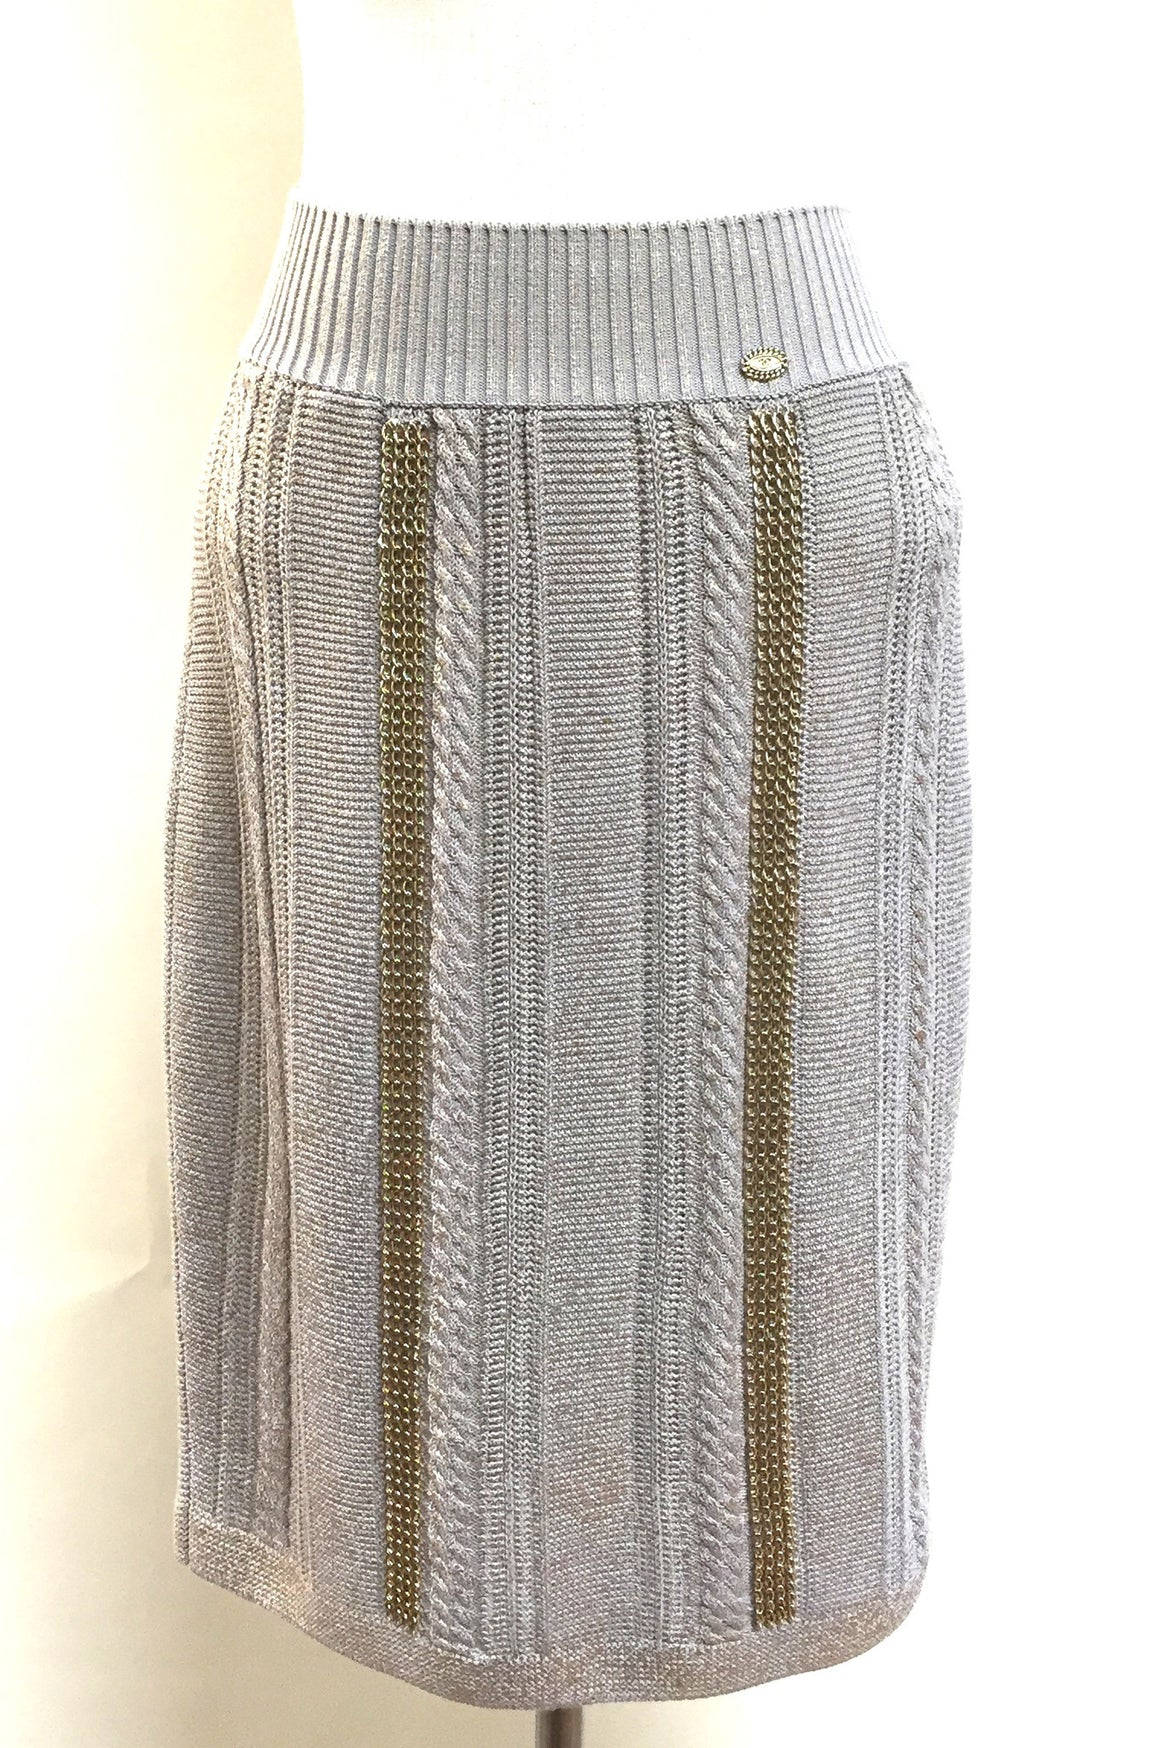 bisbiz.com CHANEL Spring '08 Pale-Gray Fantasy-Knit Skirt w/Gold Chain Embellishment  Size: 38/6 - Bis Luxury Resale